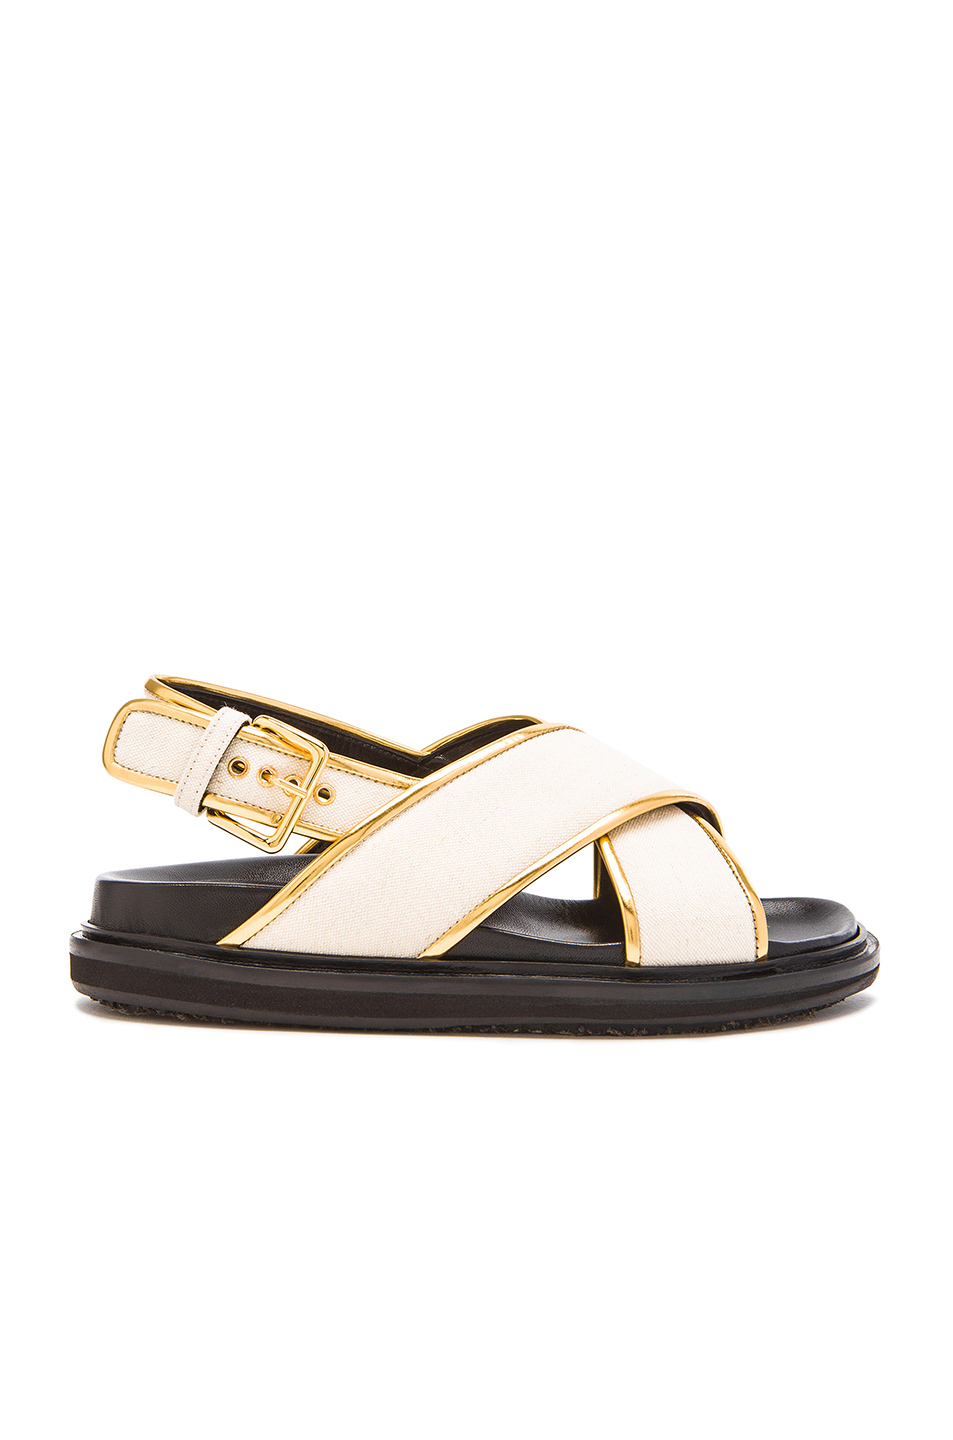 MARNI - CHEVRON CANVAS SANDALS